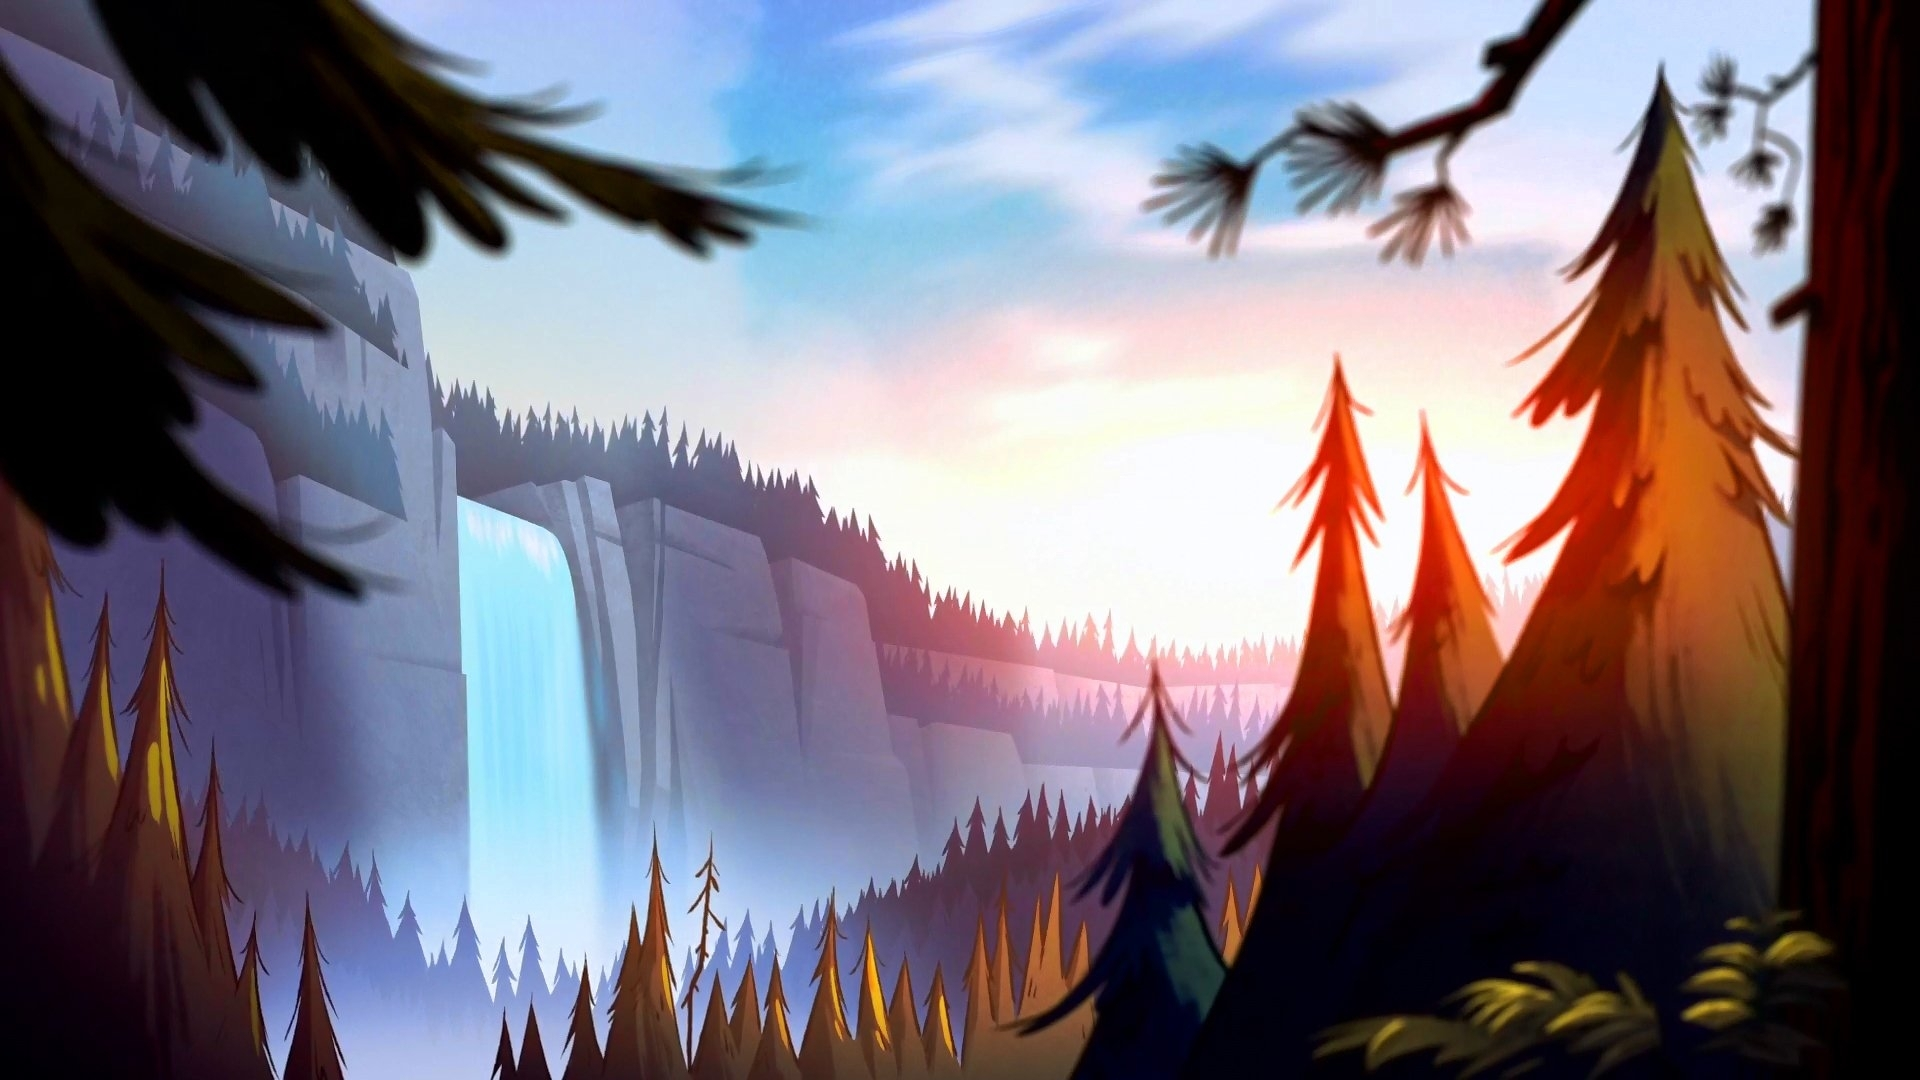 41 gravity falls hd wallpapers | background images - wallpaper abyss